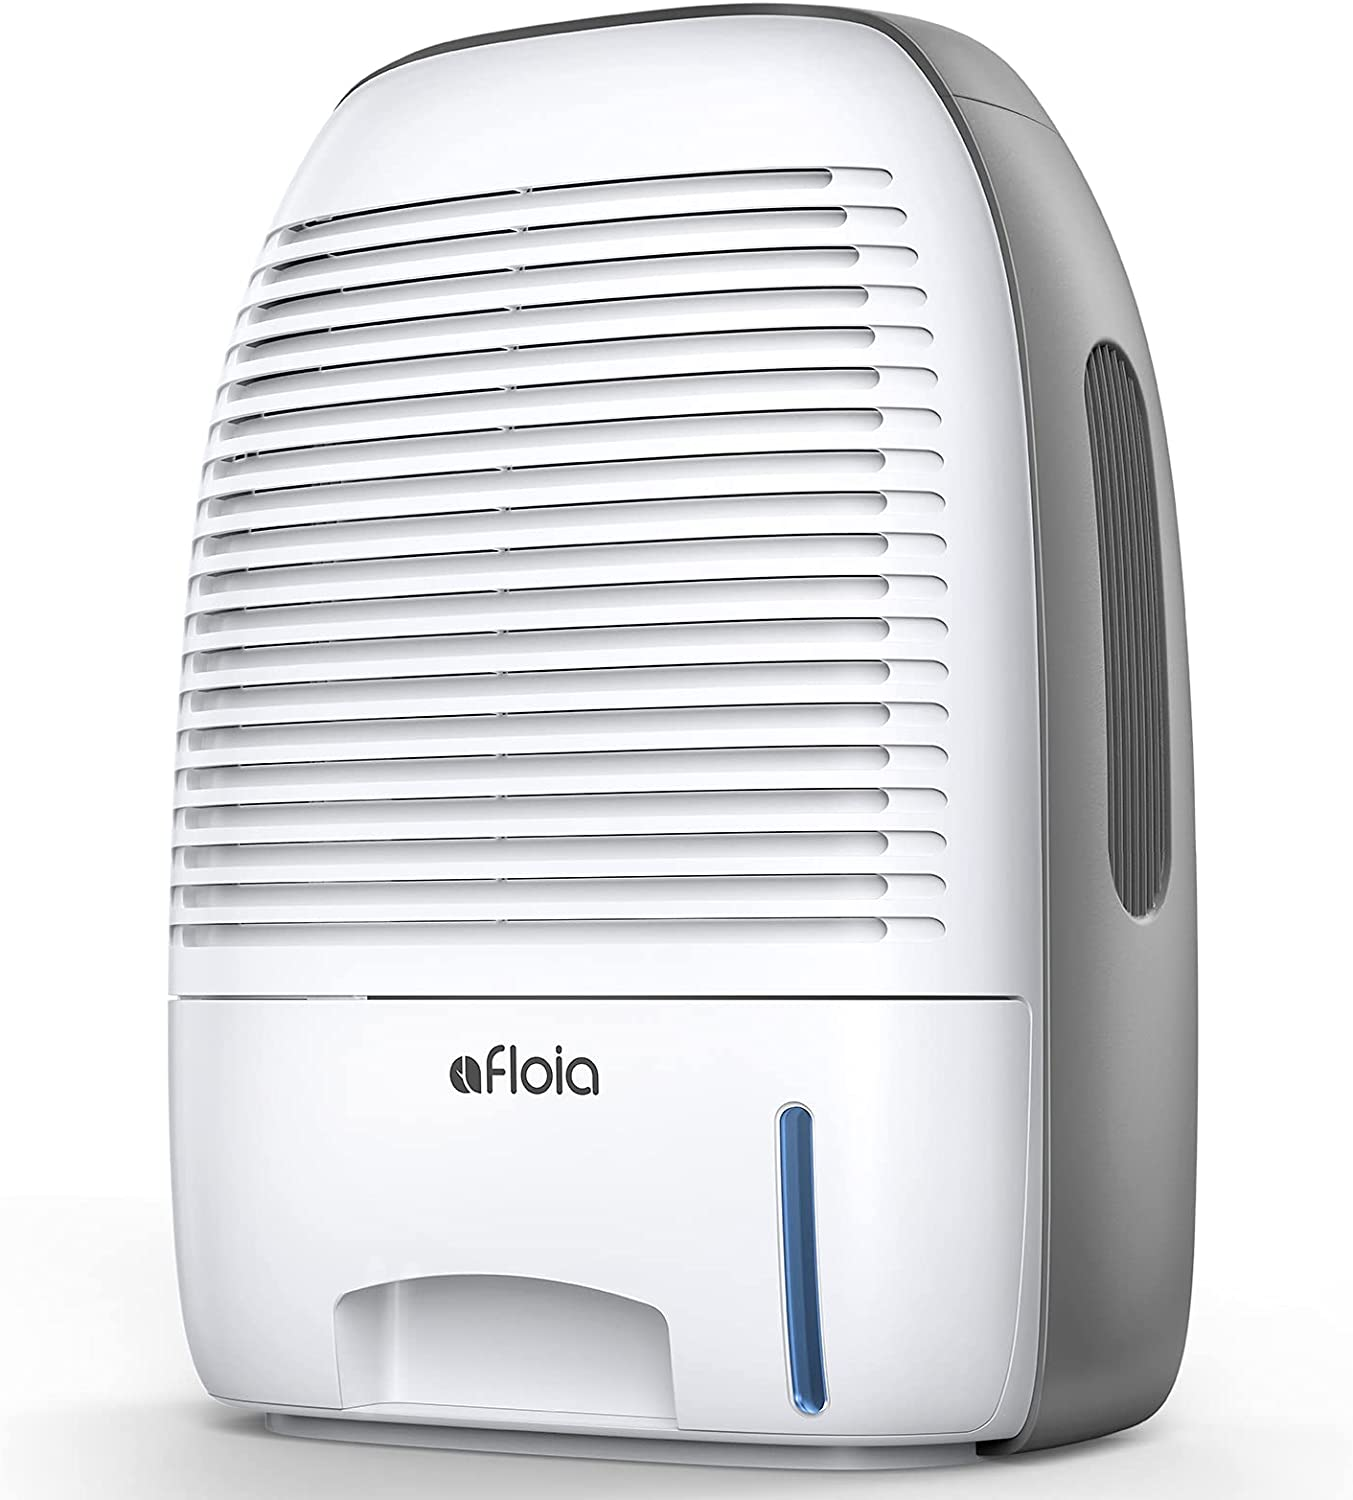 Afloia Dehumidifier for Seattle Mall Home 52oz Ultra Capacity Quiet f 1500ml Indefinitely